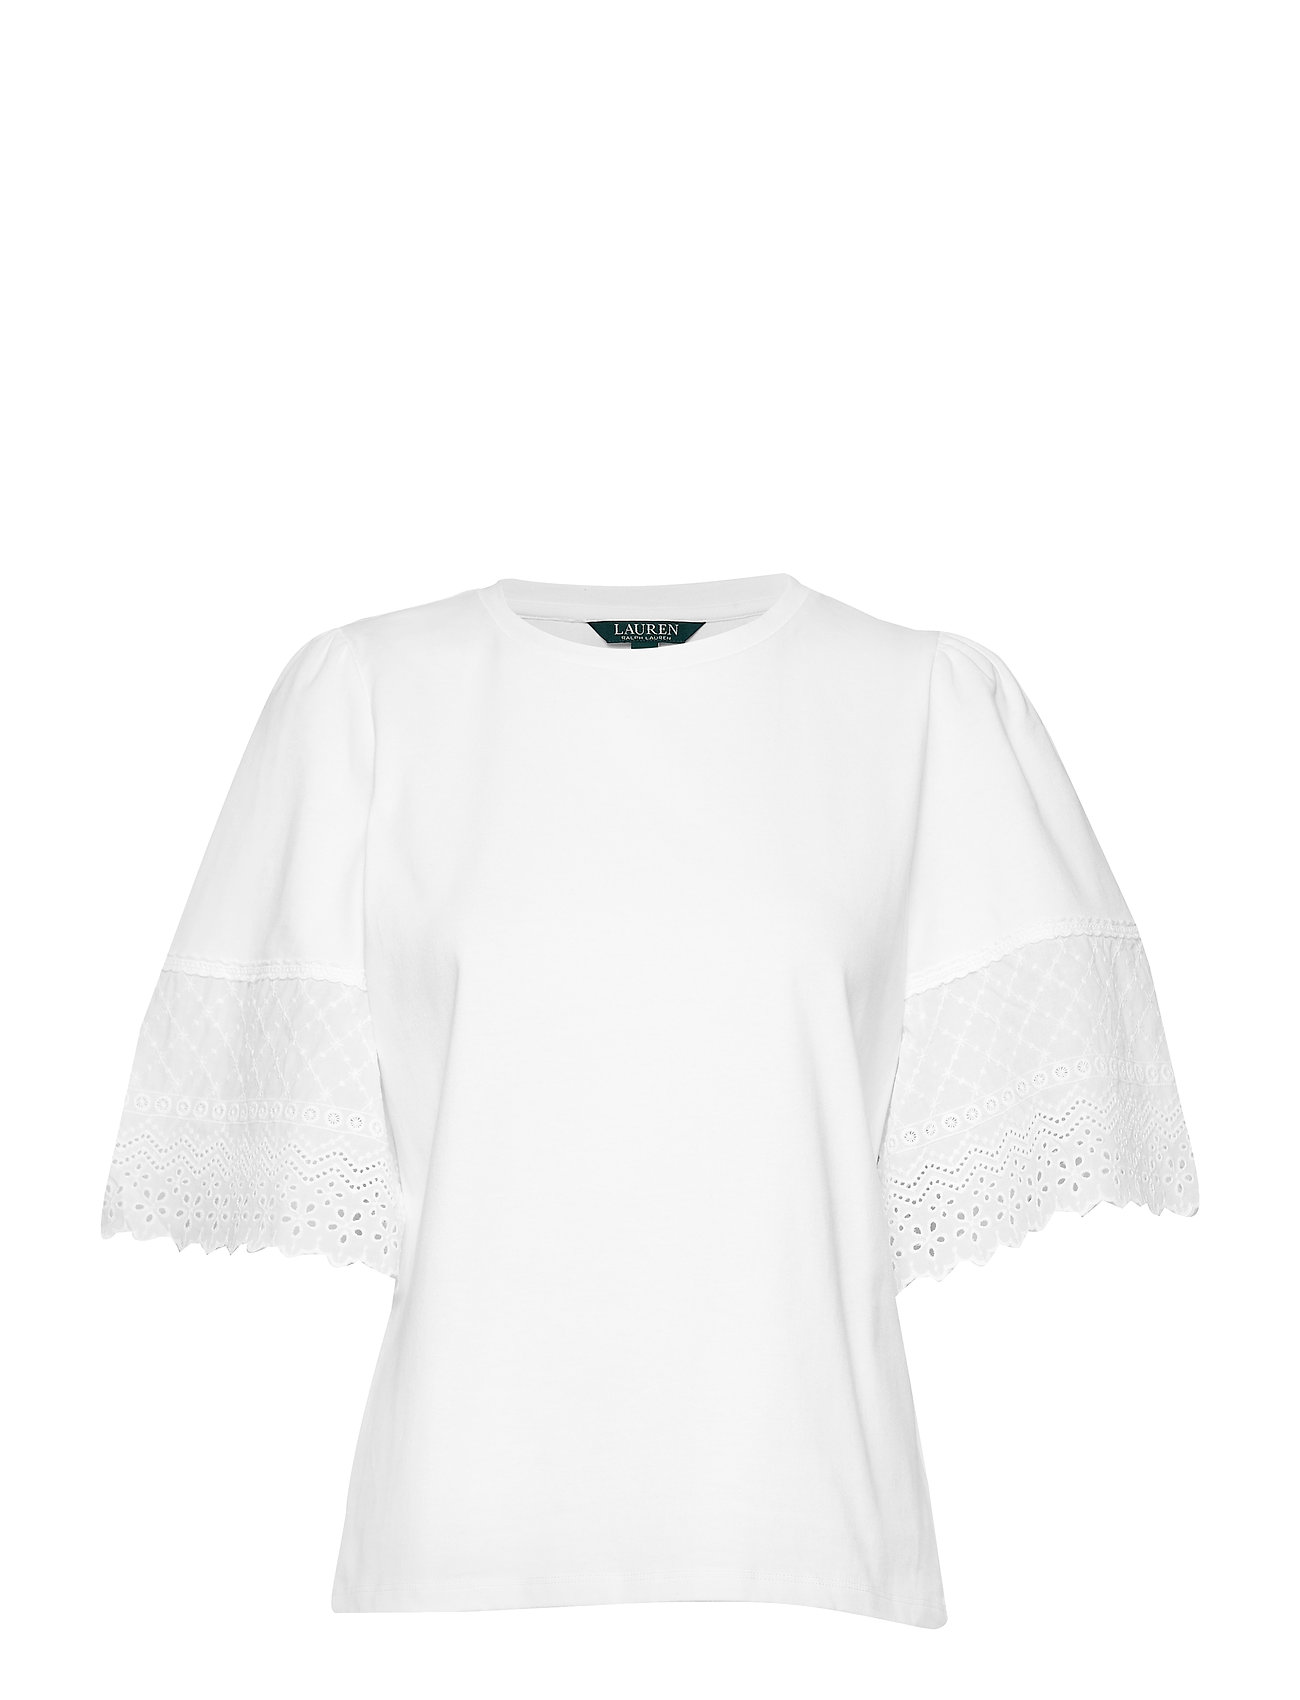 Lauren Ralph Lauren Eyelet Cotton Bell-Sleeve Top - WHITE